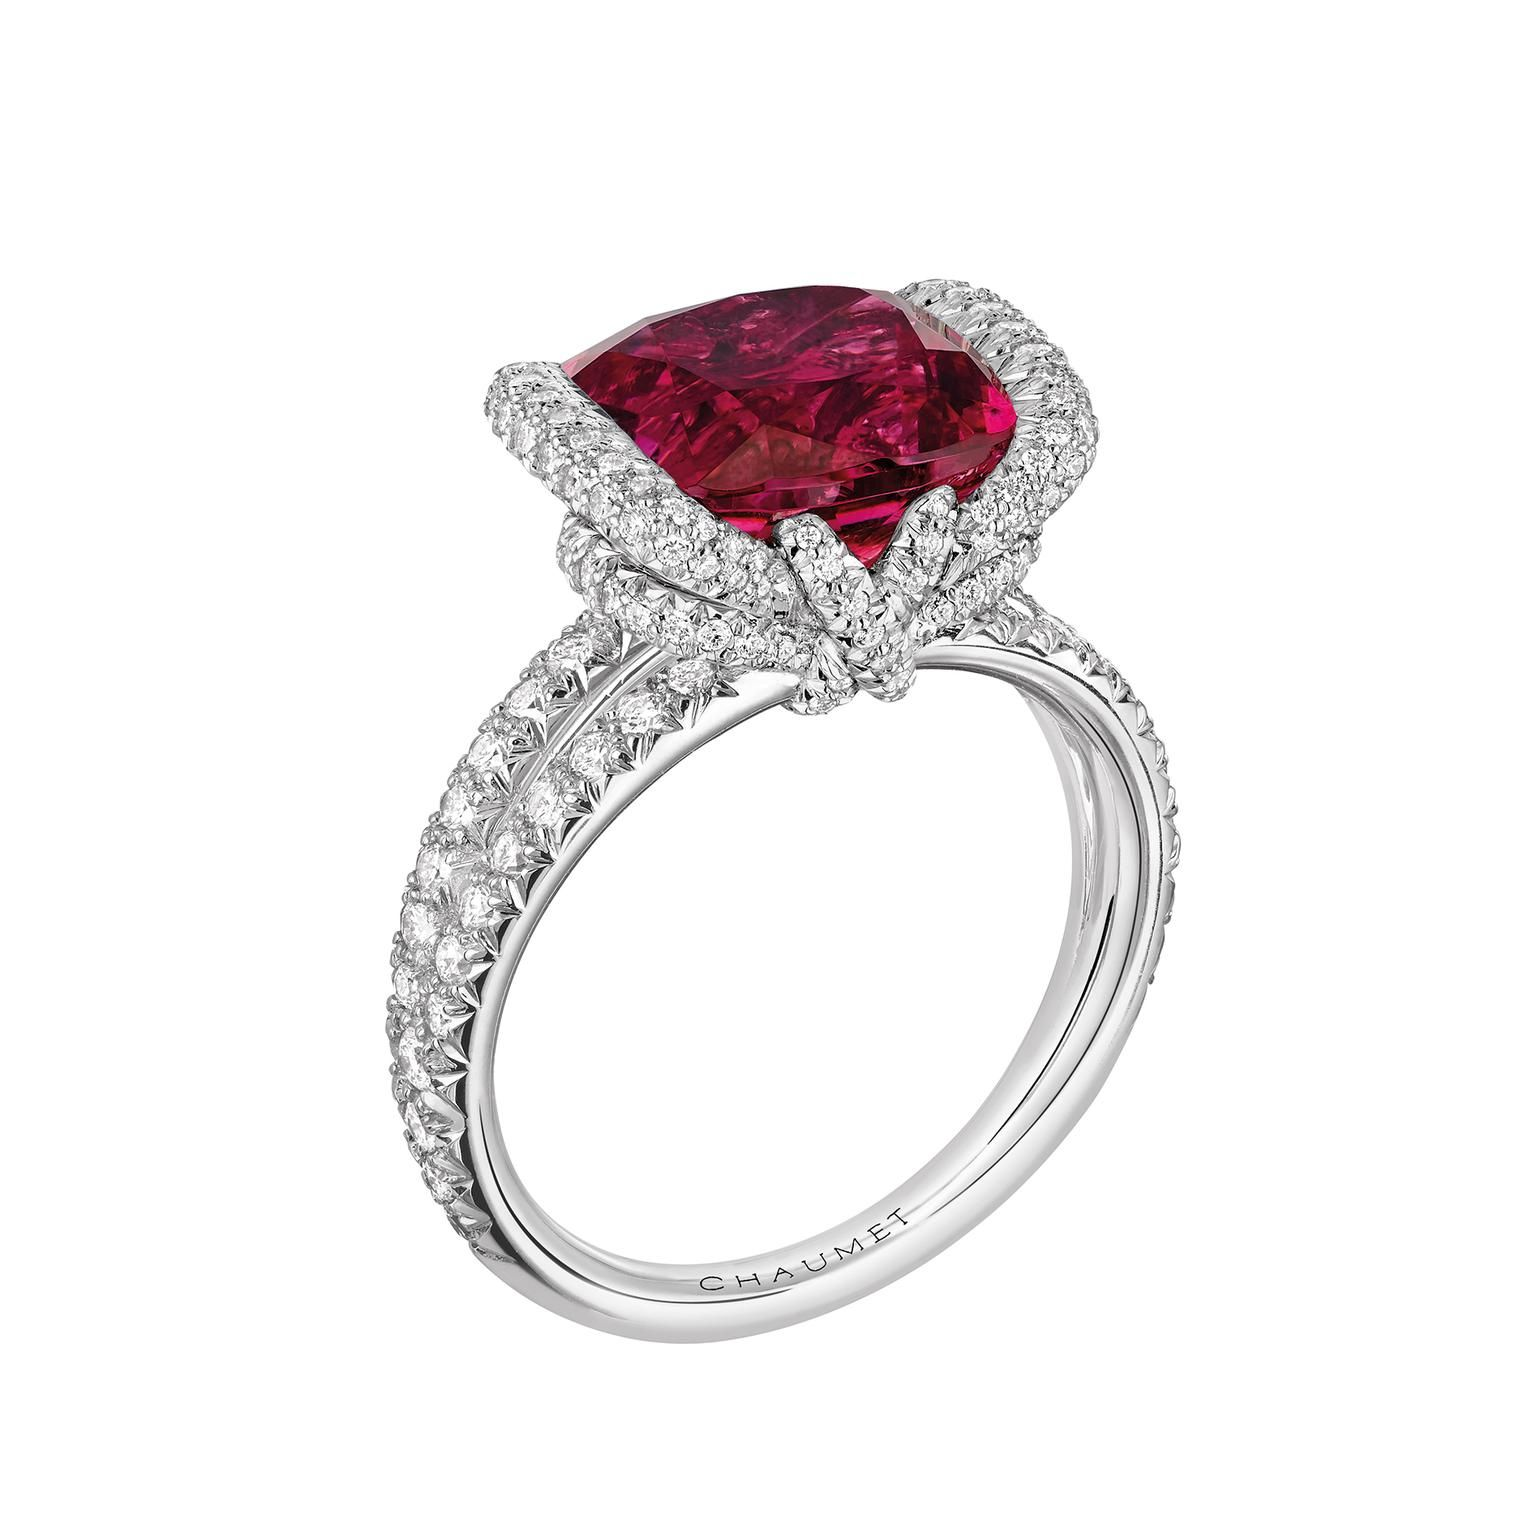 Chaumet a liens jewel for all seasons chaumet ring and